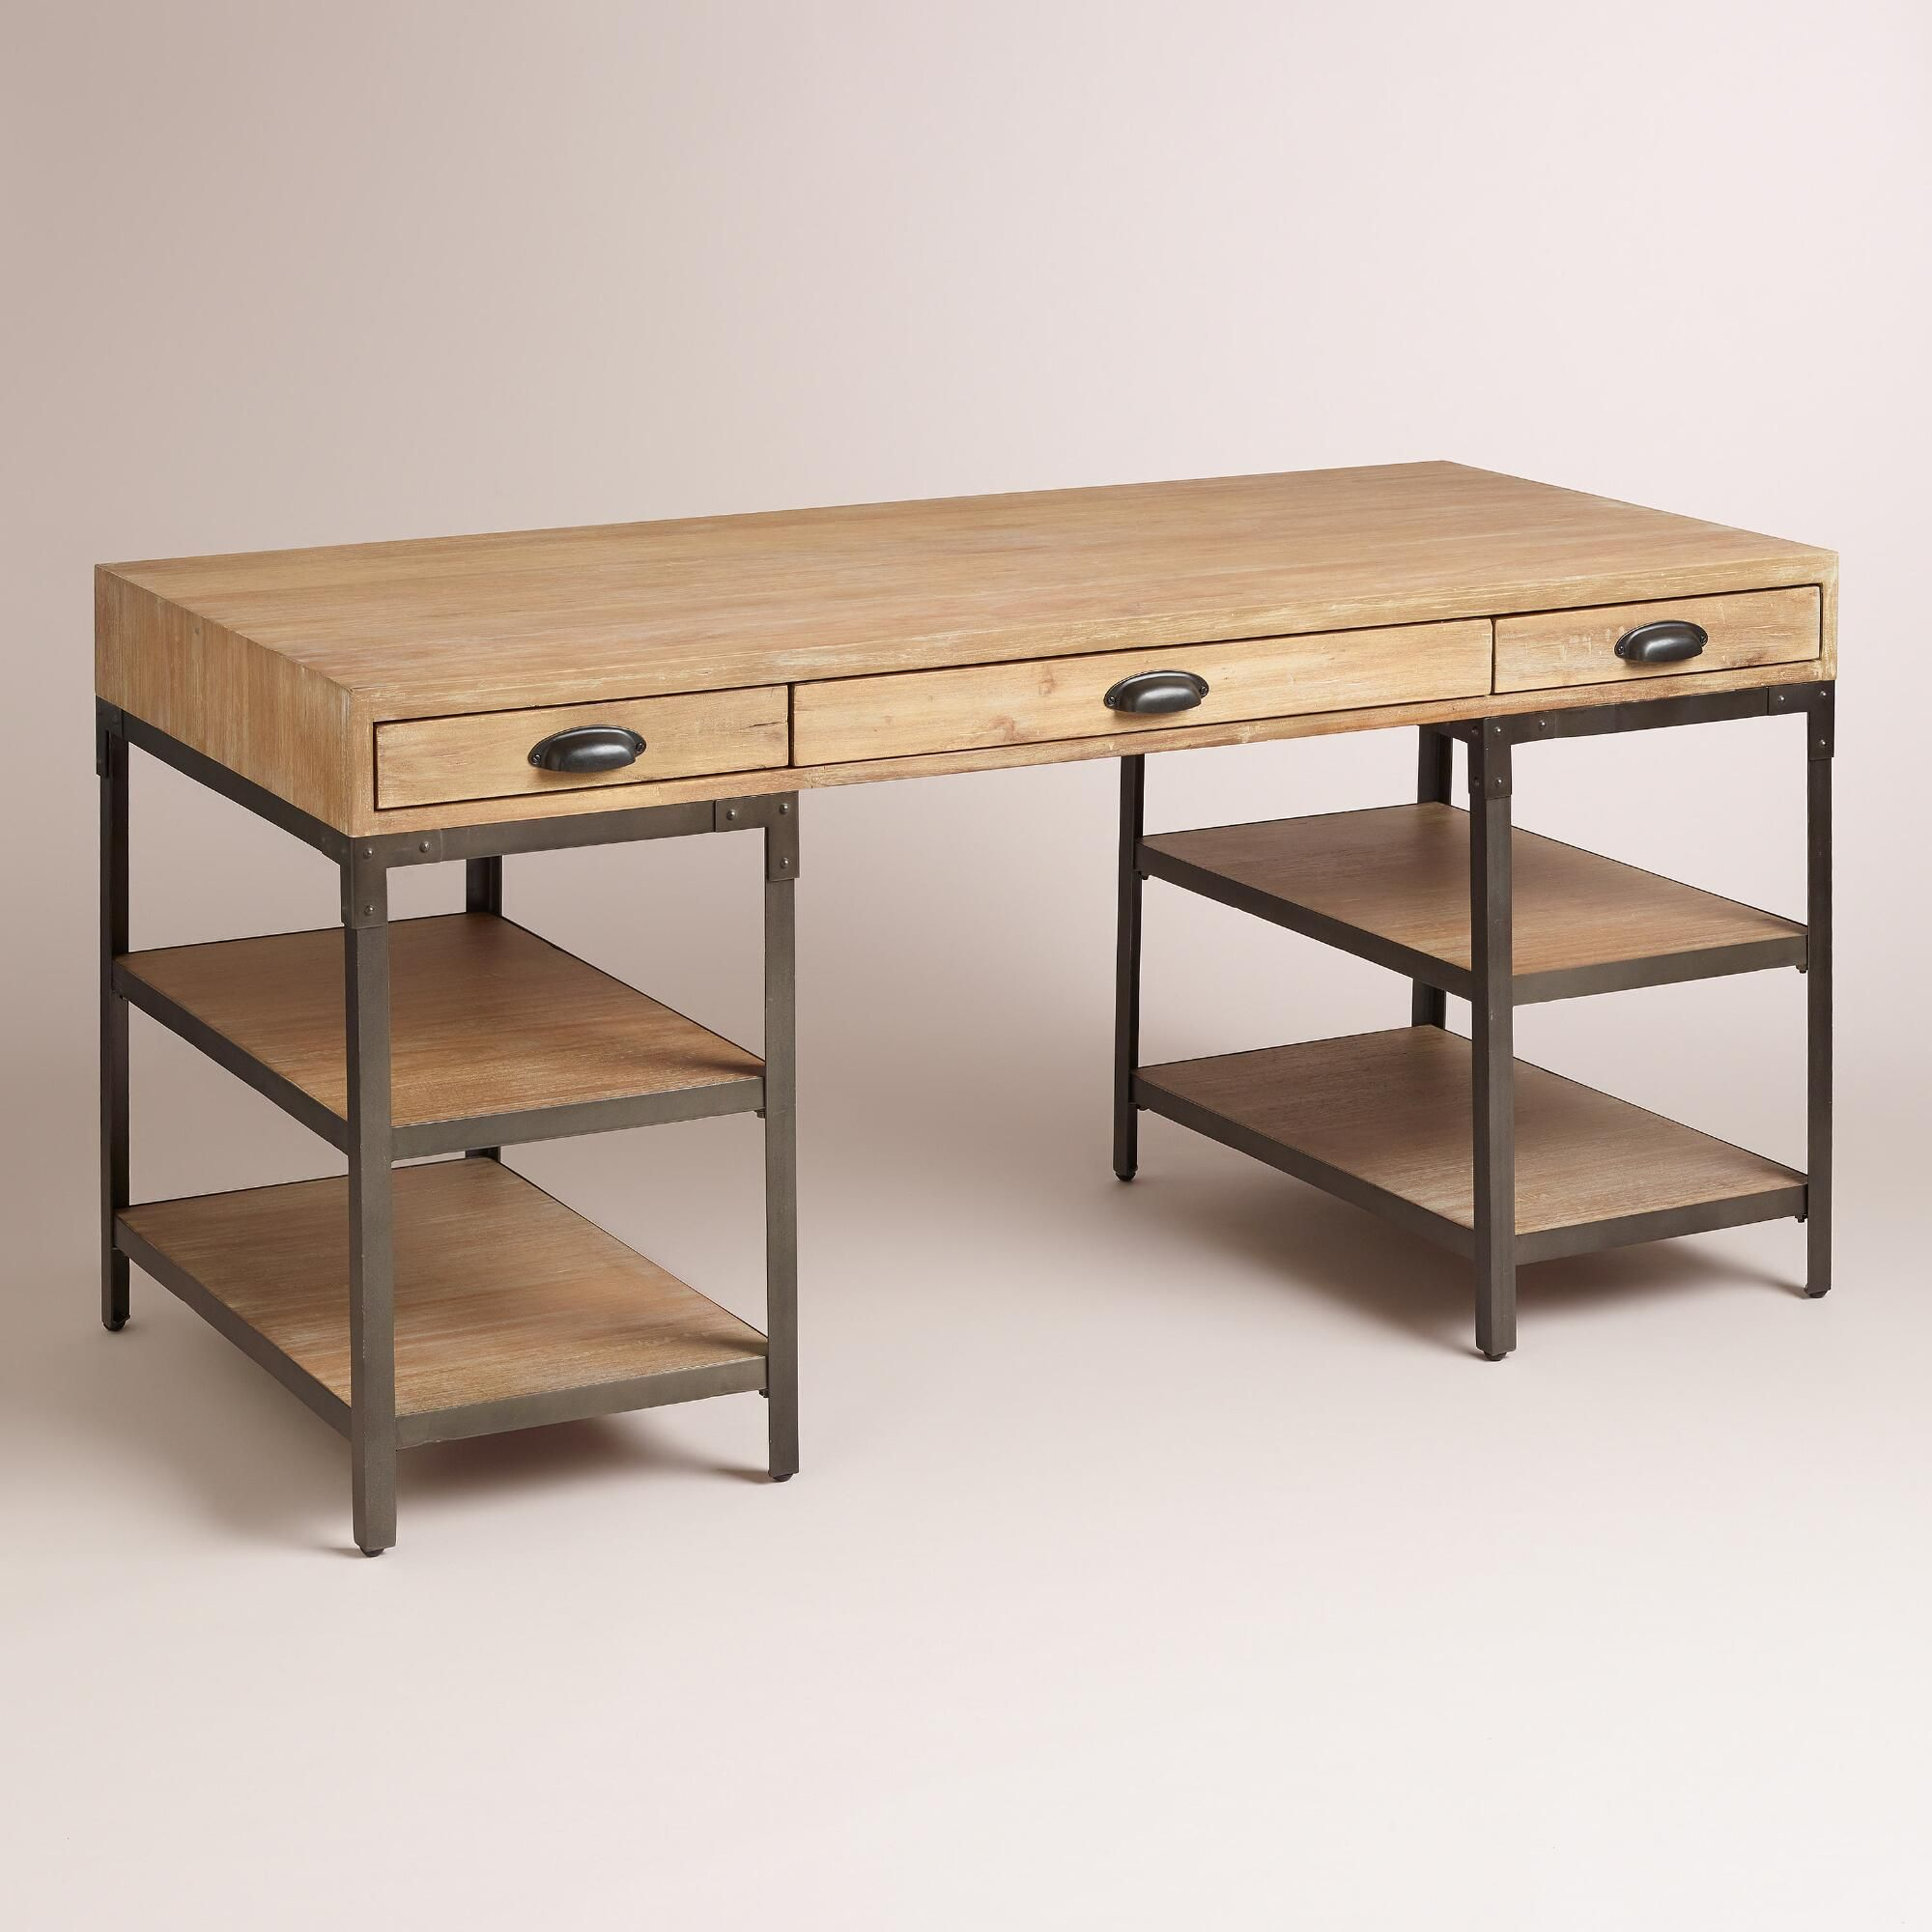 Wonderful West Elm Office Desk get the look Wood And Metal Teagan Desk